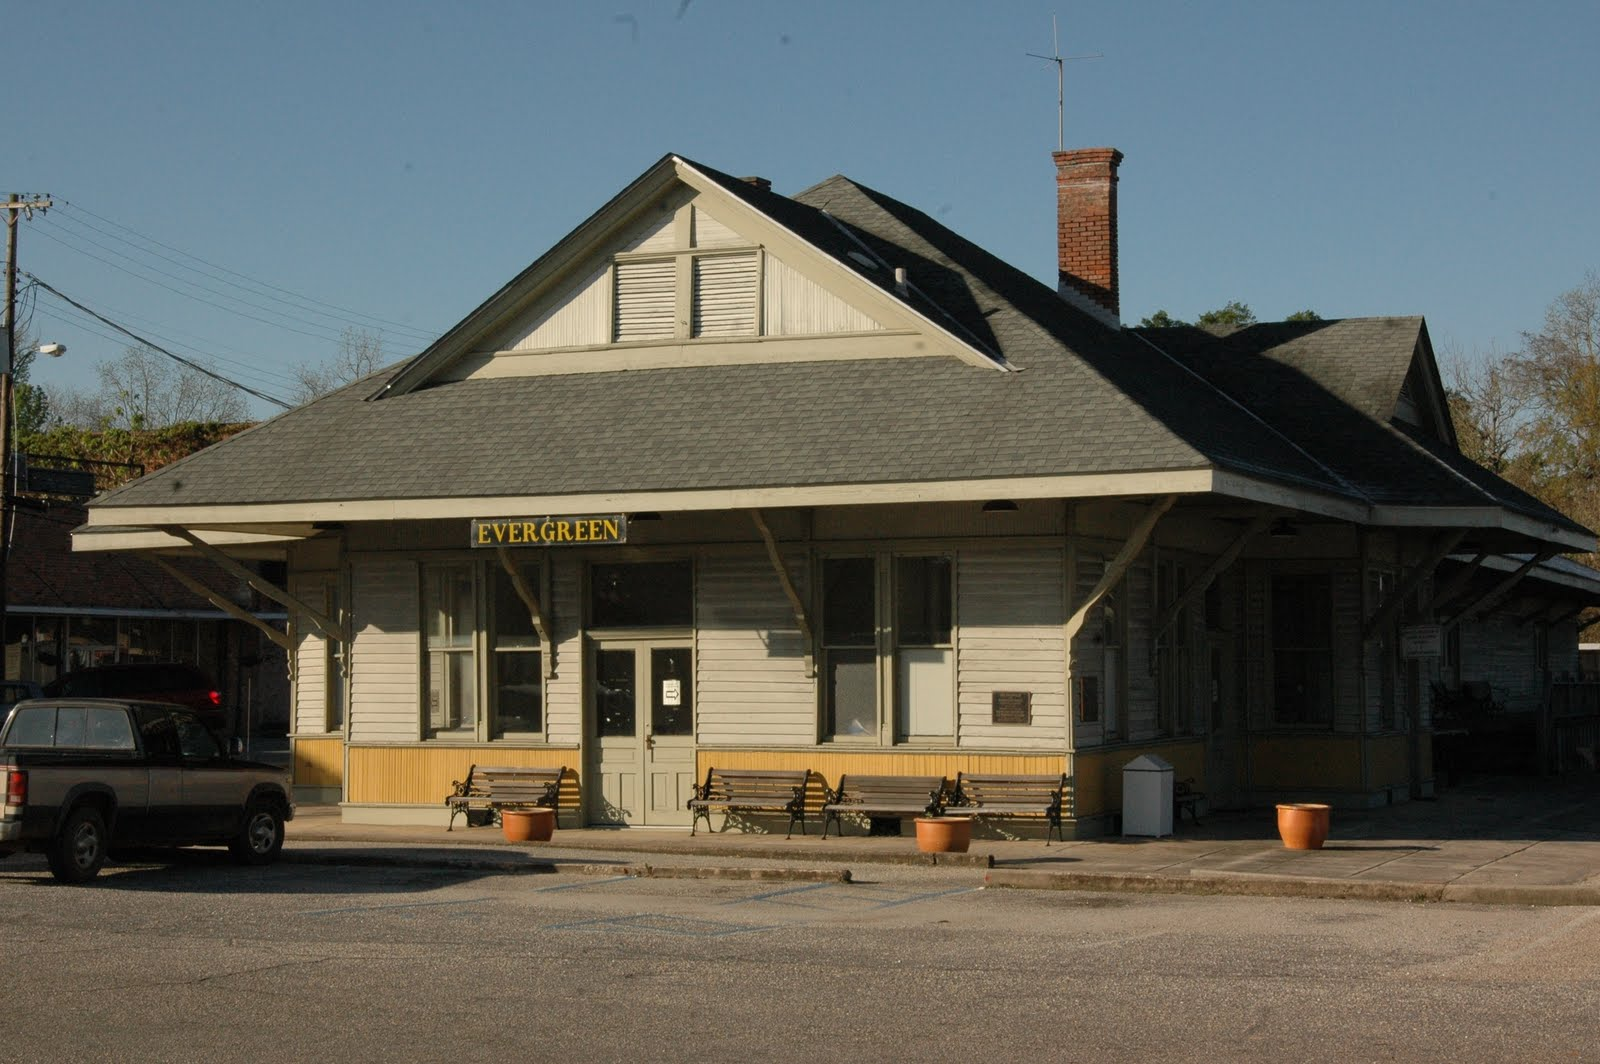 Alabama conecuh county brooklyn 36429 - This Year S Top 10 Spookiest Places In Conecuh County List Released